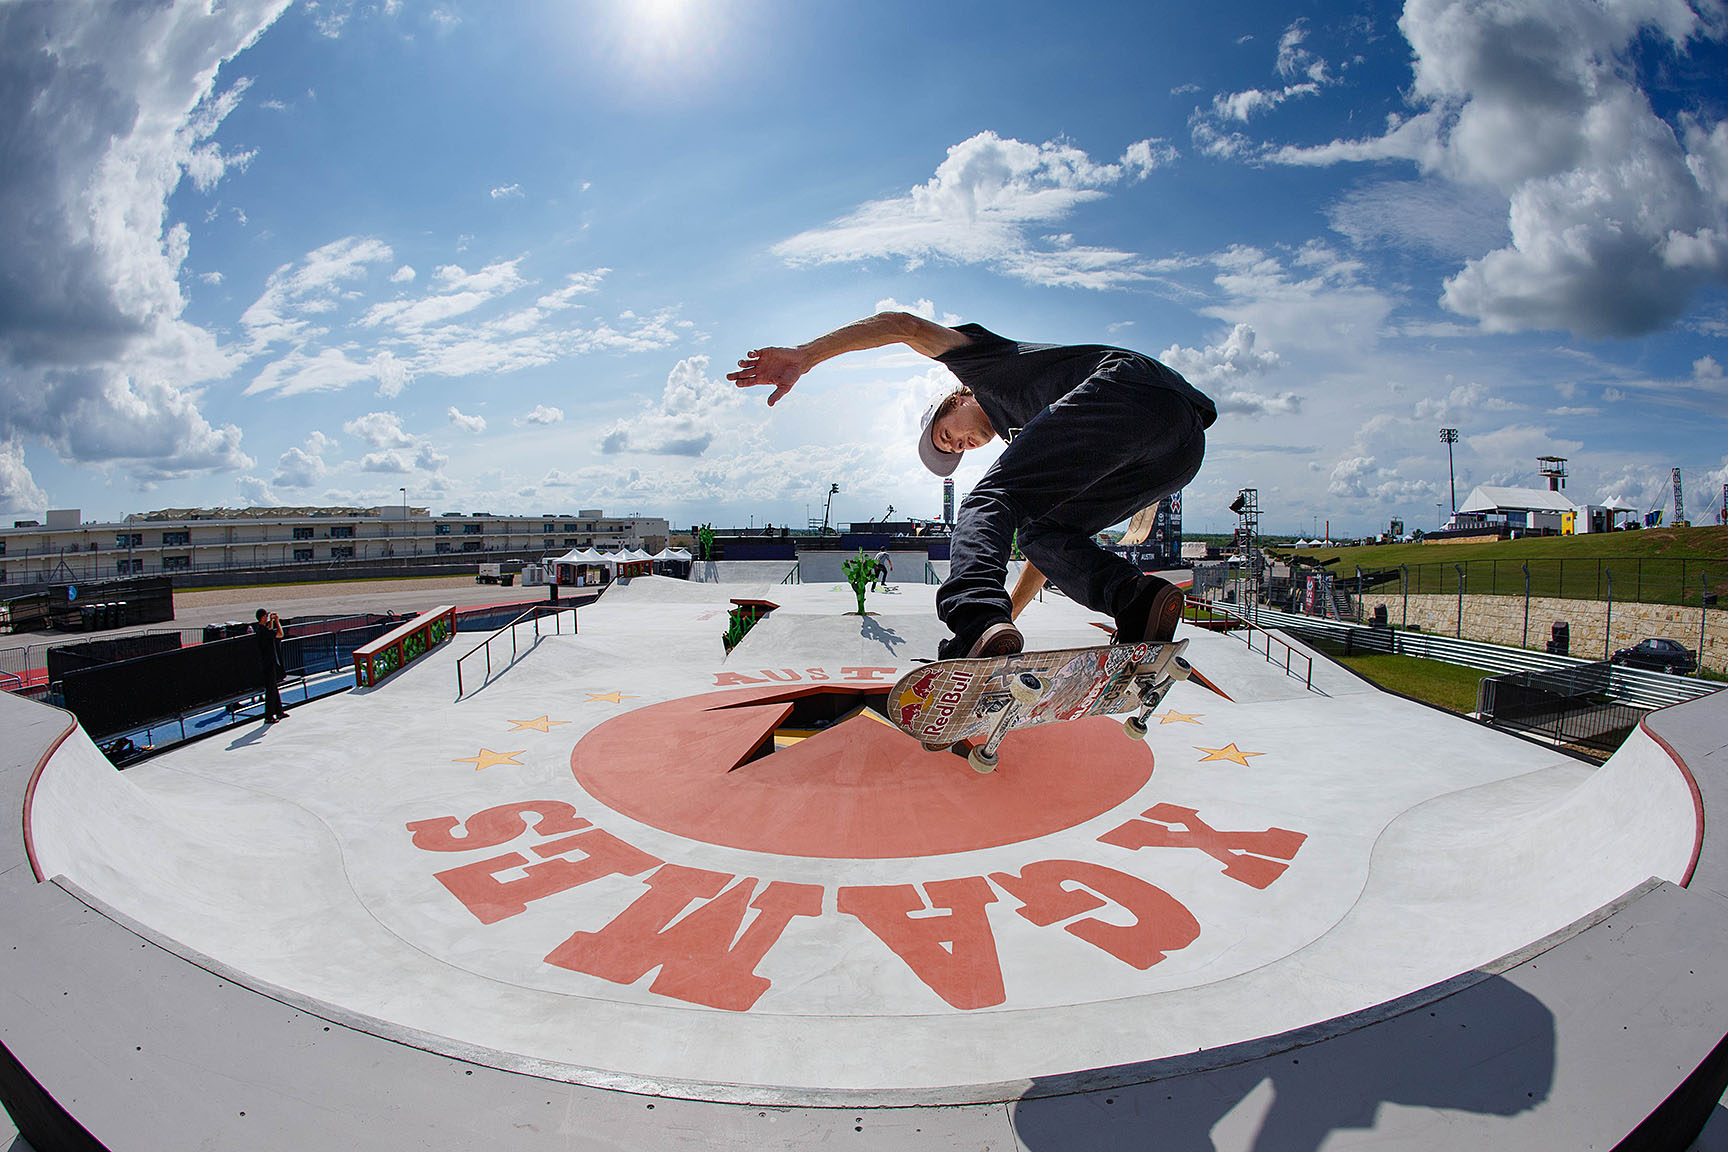 Two-time X Games Real Street silver medalist Ryan Decenzo was the top qualifier into the final at X Games Austin 2015 and finished just off the podium. The video star has two gold medals in X Games Game of Skate but hasn't medaled in Street since 2010.